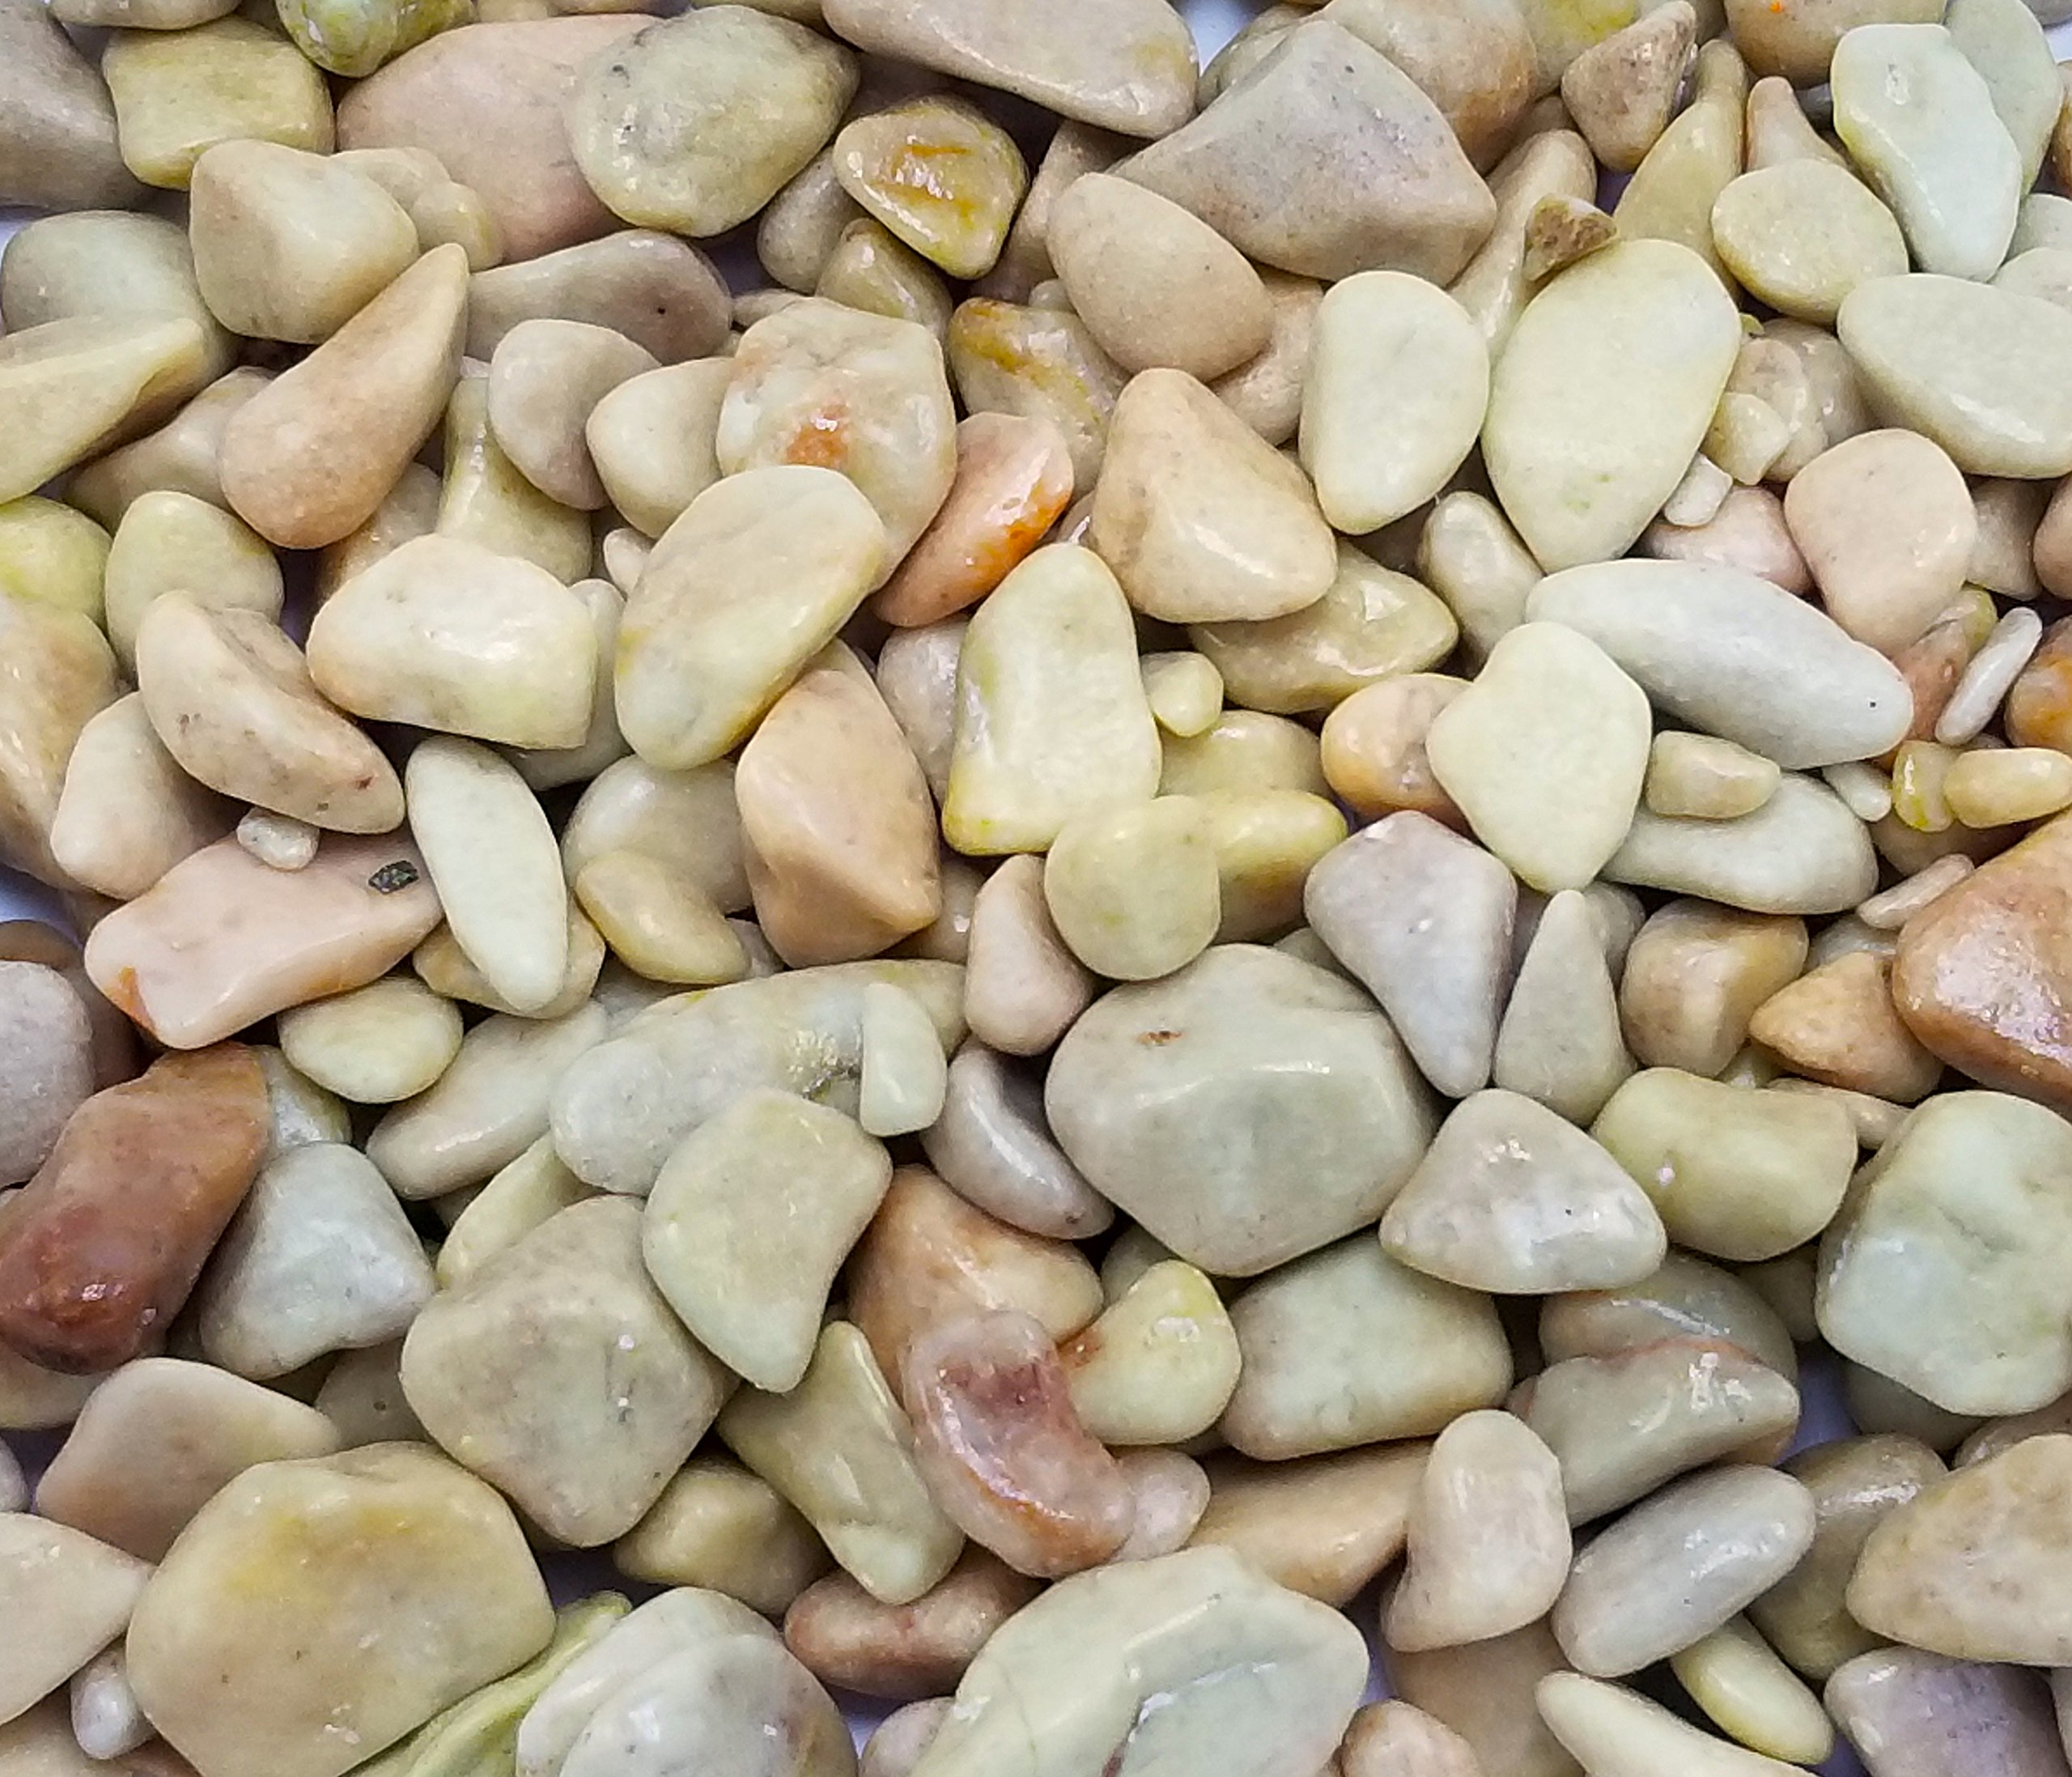 Exotic Rose Pebbles (1.65lbs Bag) 7-15mm Beach Pebble Stone Rocks / Polished Pebbles Terrarium, Aquarium, Decoration, Landscape, Succulents (Outdoor & Indoor), Home / Garden, Vase or Pot Fill